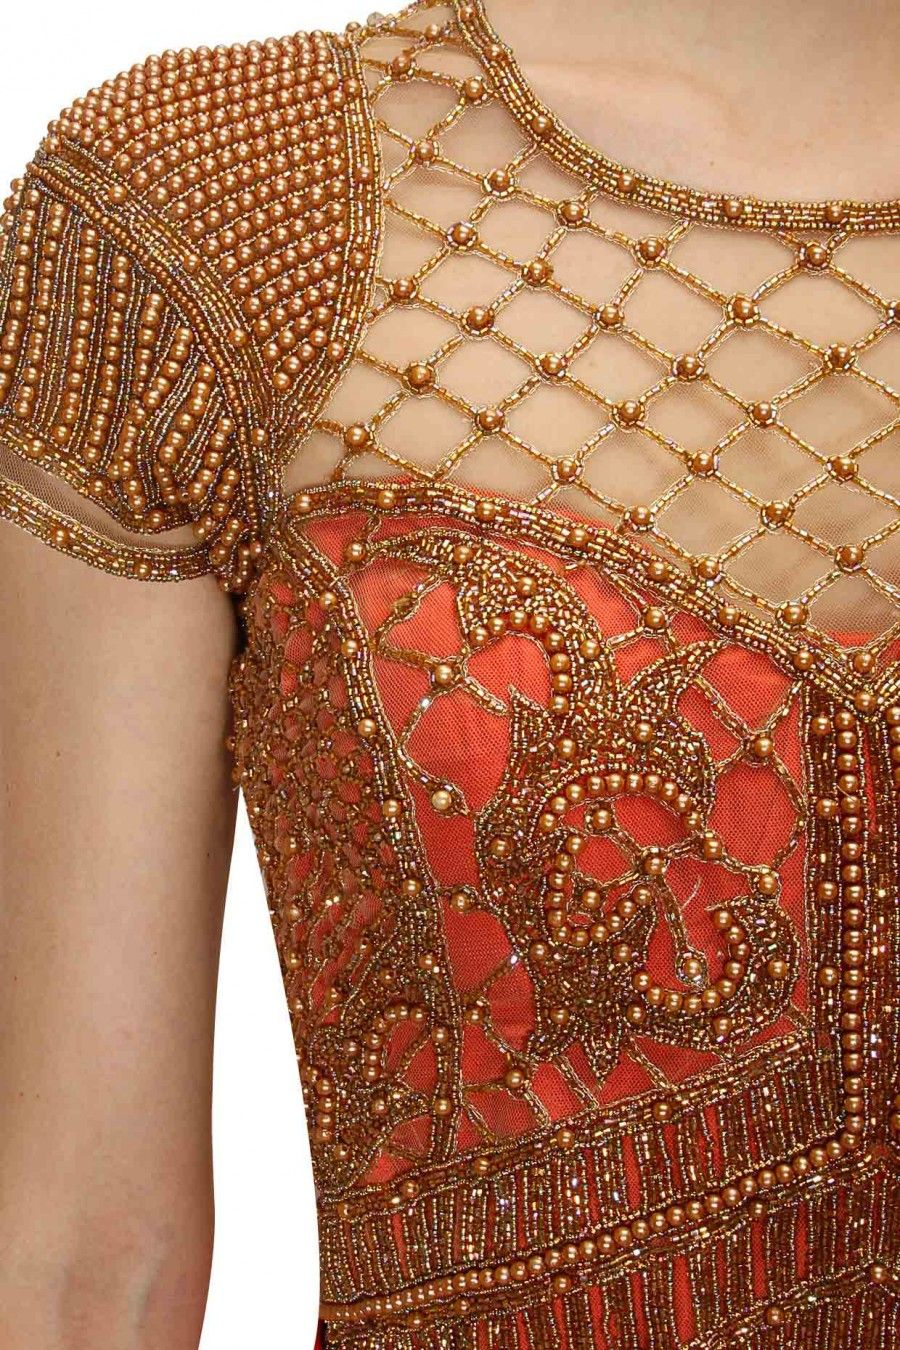 Golden Readymade Blouse Designer Saree Blouse Pearl Beaded Embroidered Real Mirror Stone Silk Indian Wedding Wear Fabric Craft Tunic Top